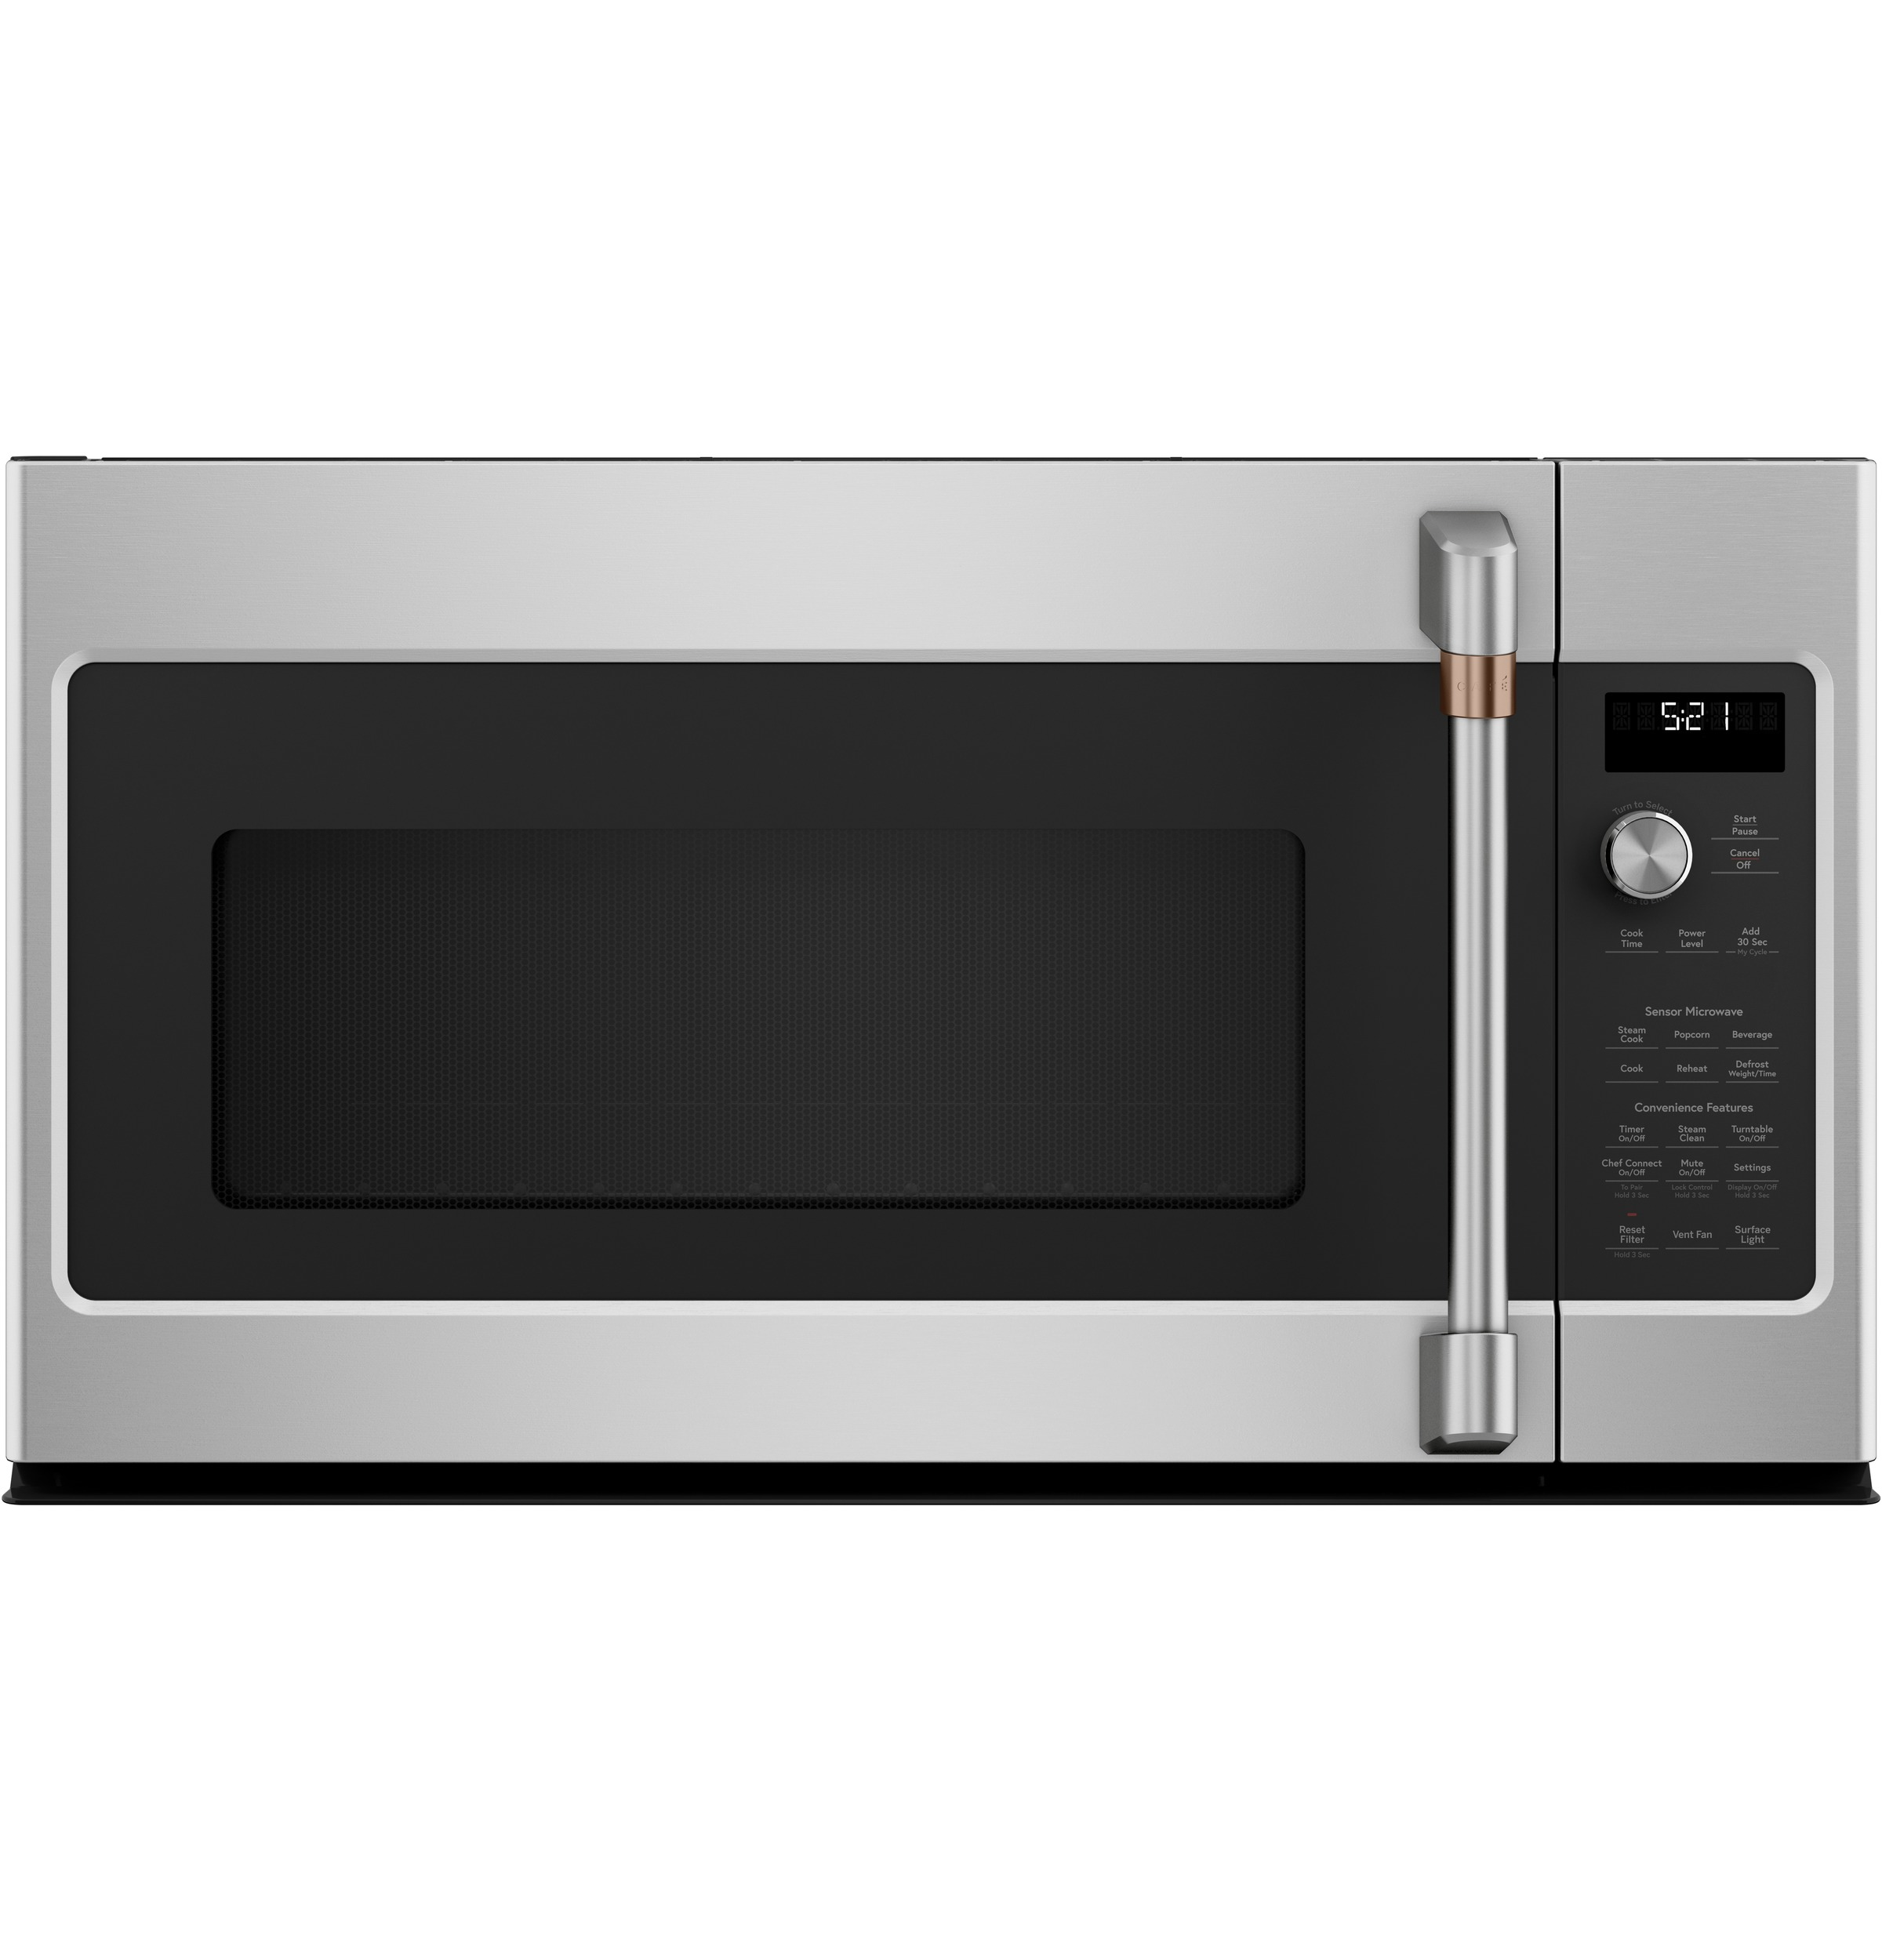 Cafe Café™ 2.1 Cu. Ft. Over-the-Range Microwave Oven